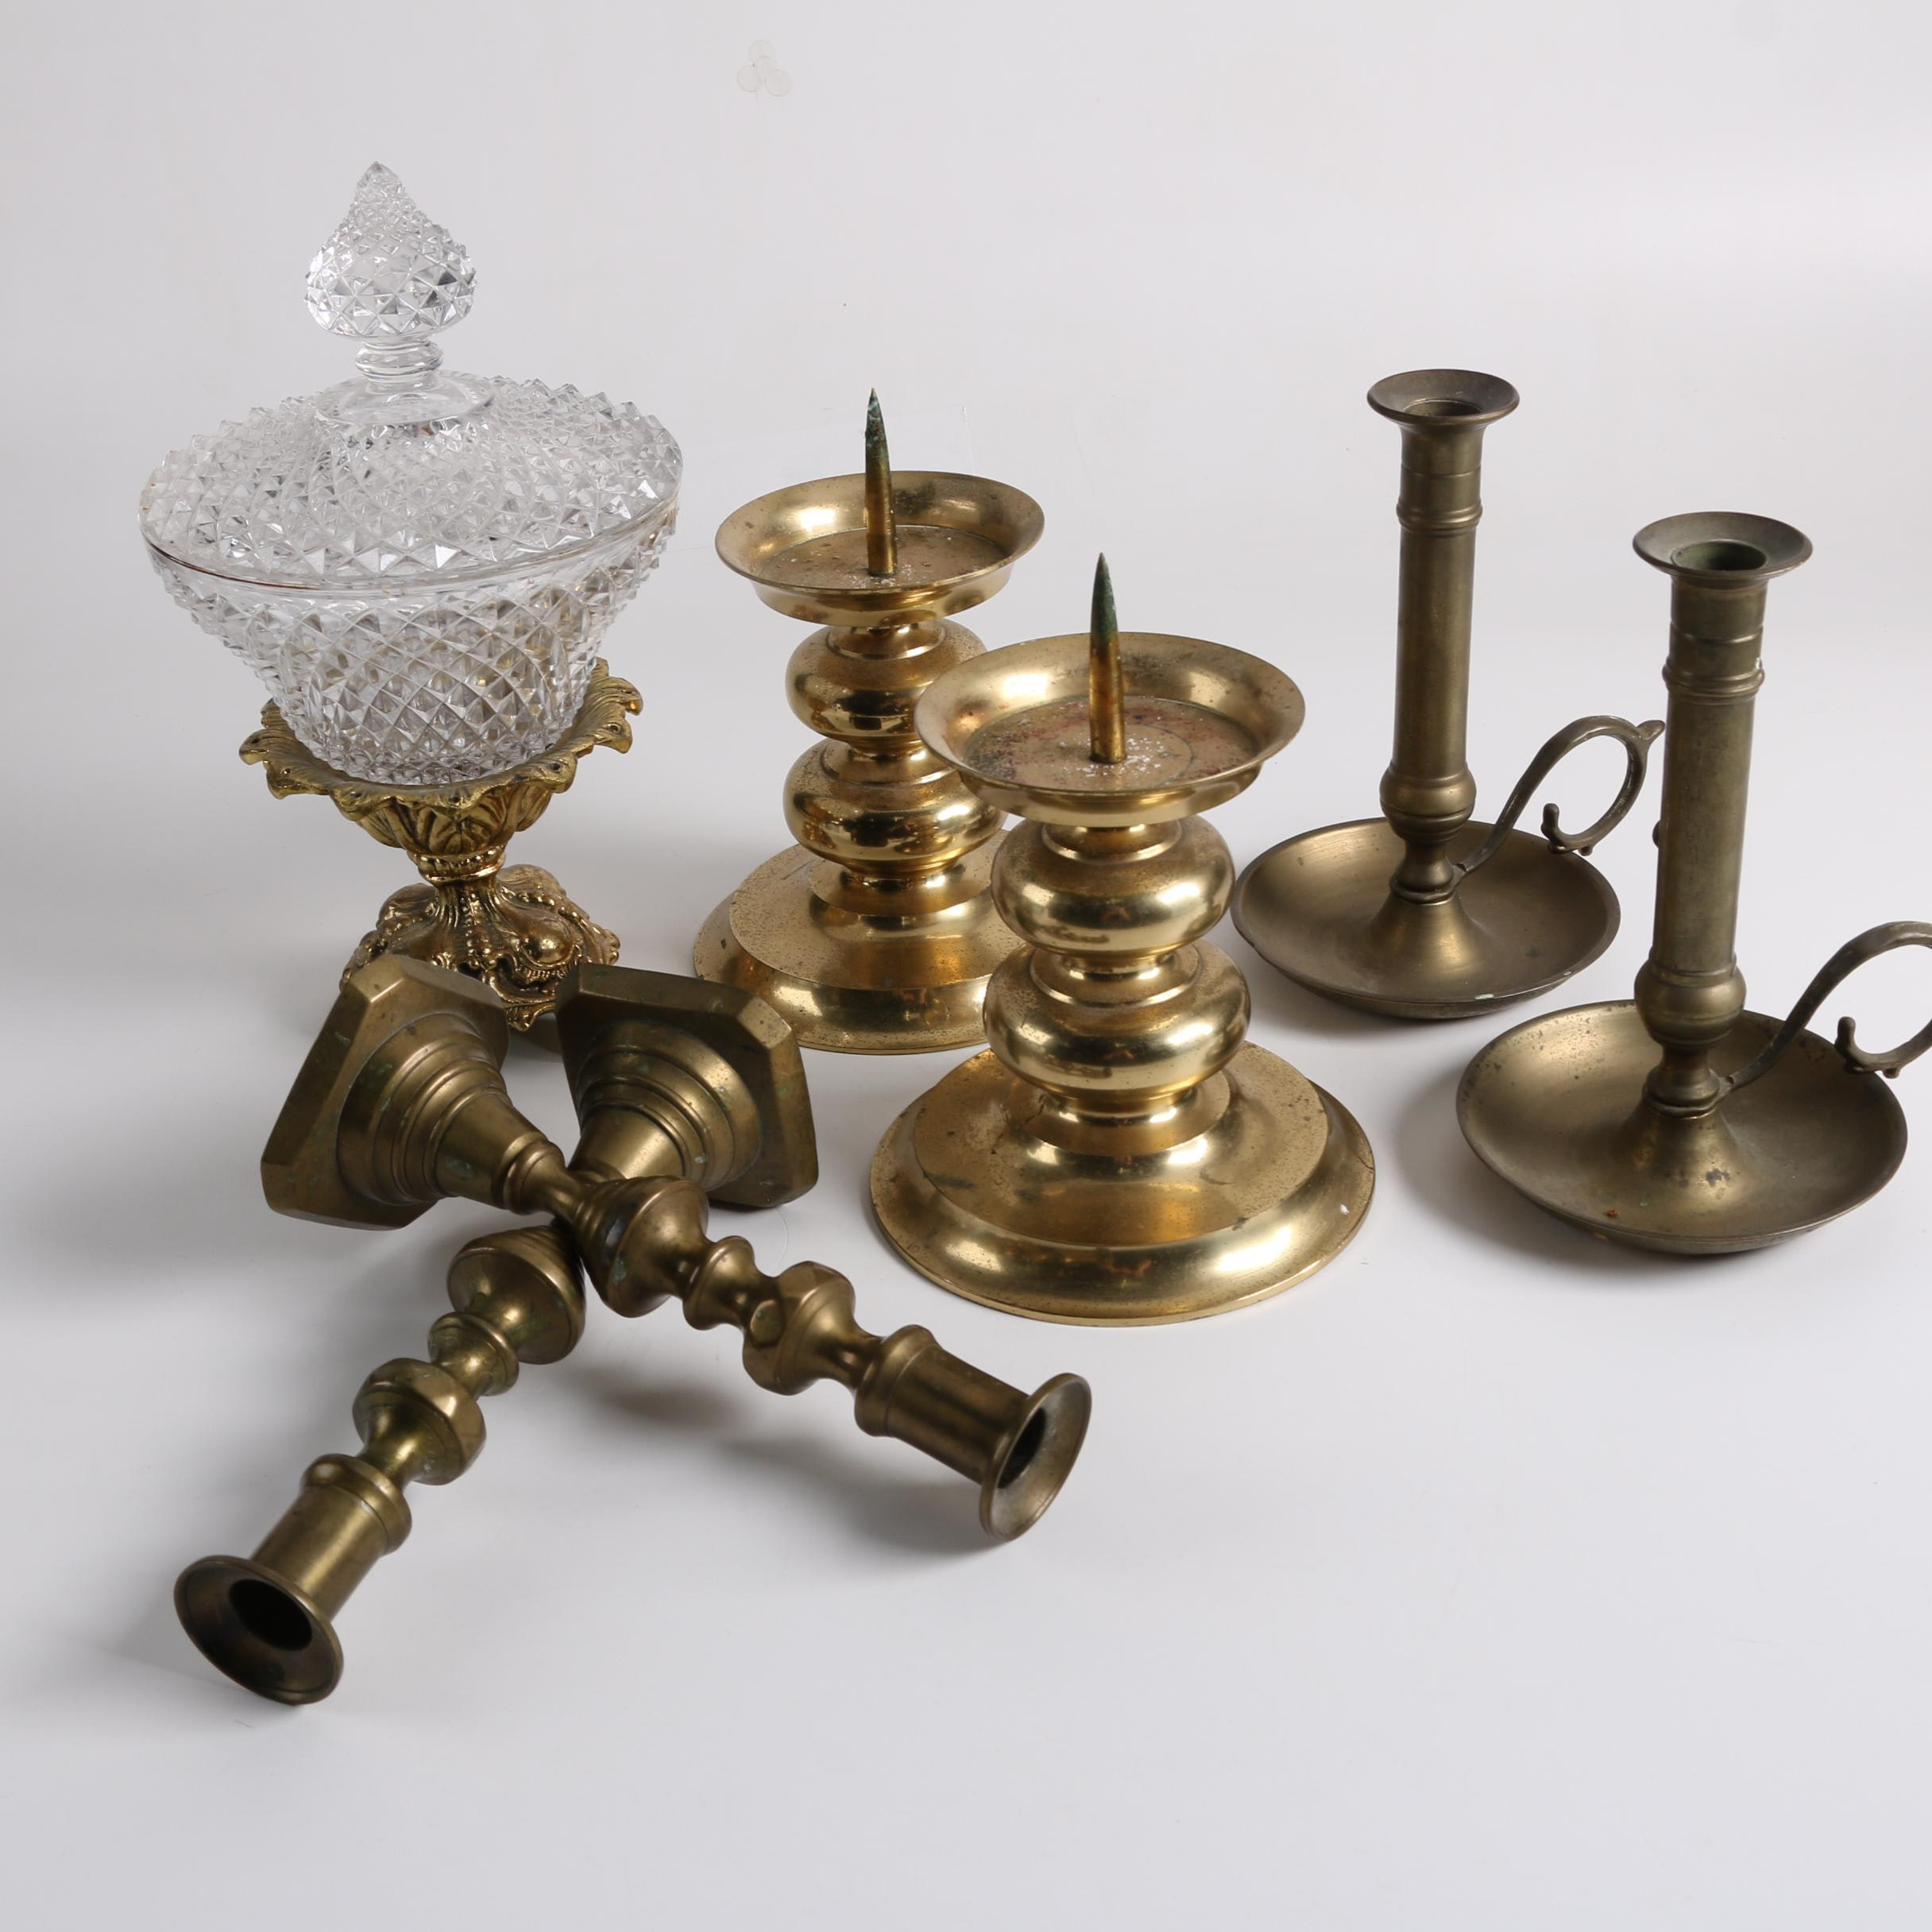 Vintage Brass Candleholders and Pressed Glass Candy Dish